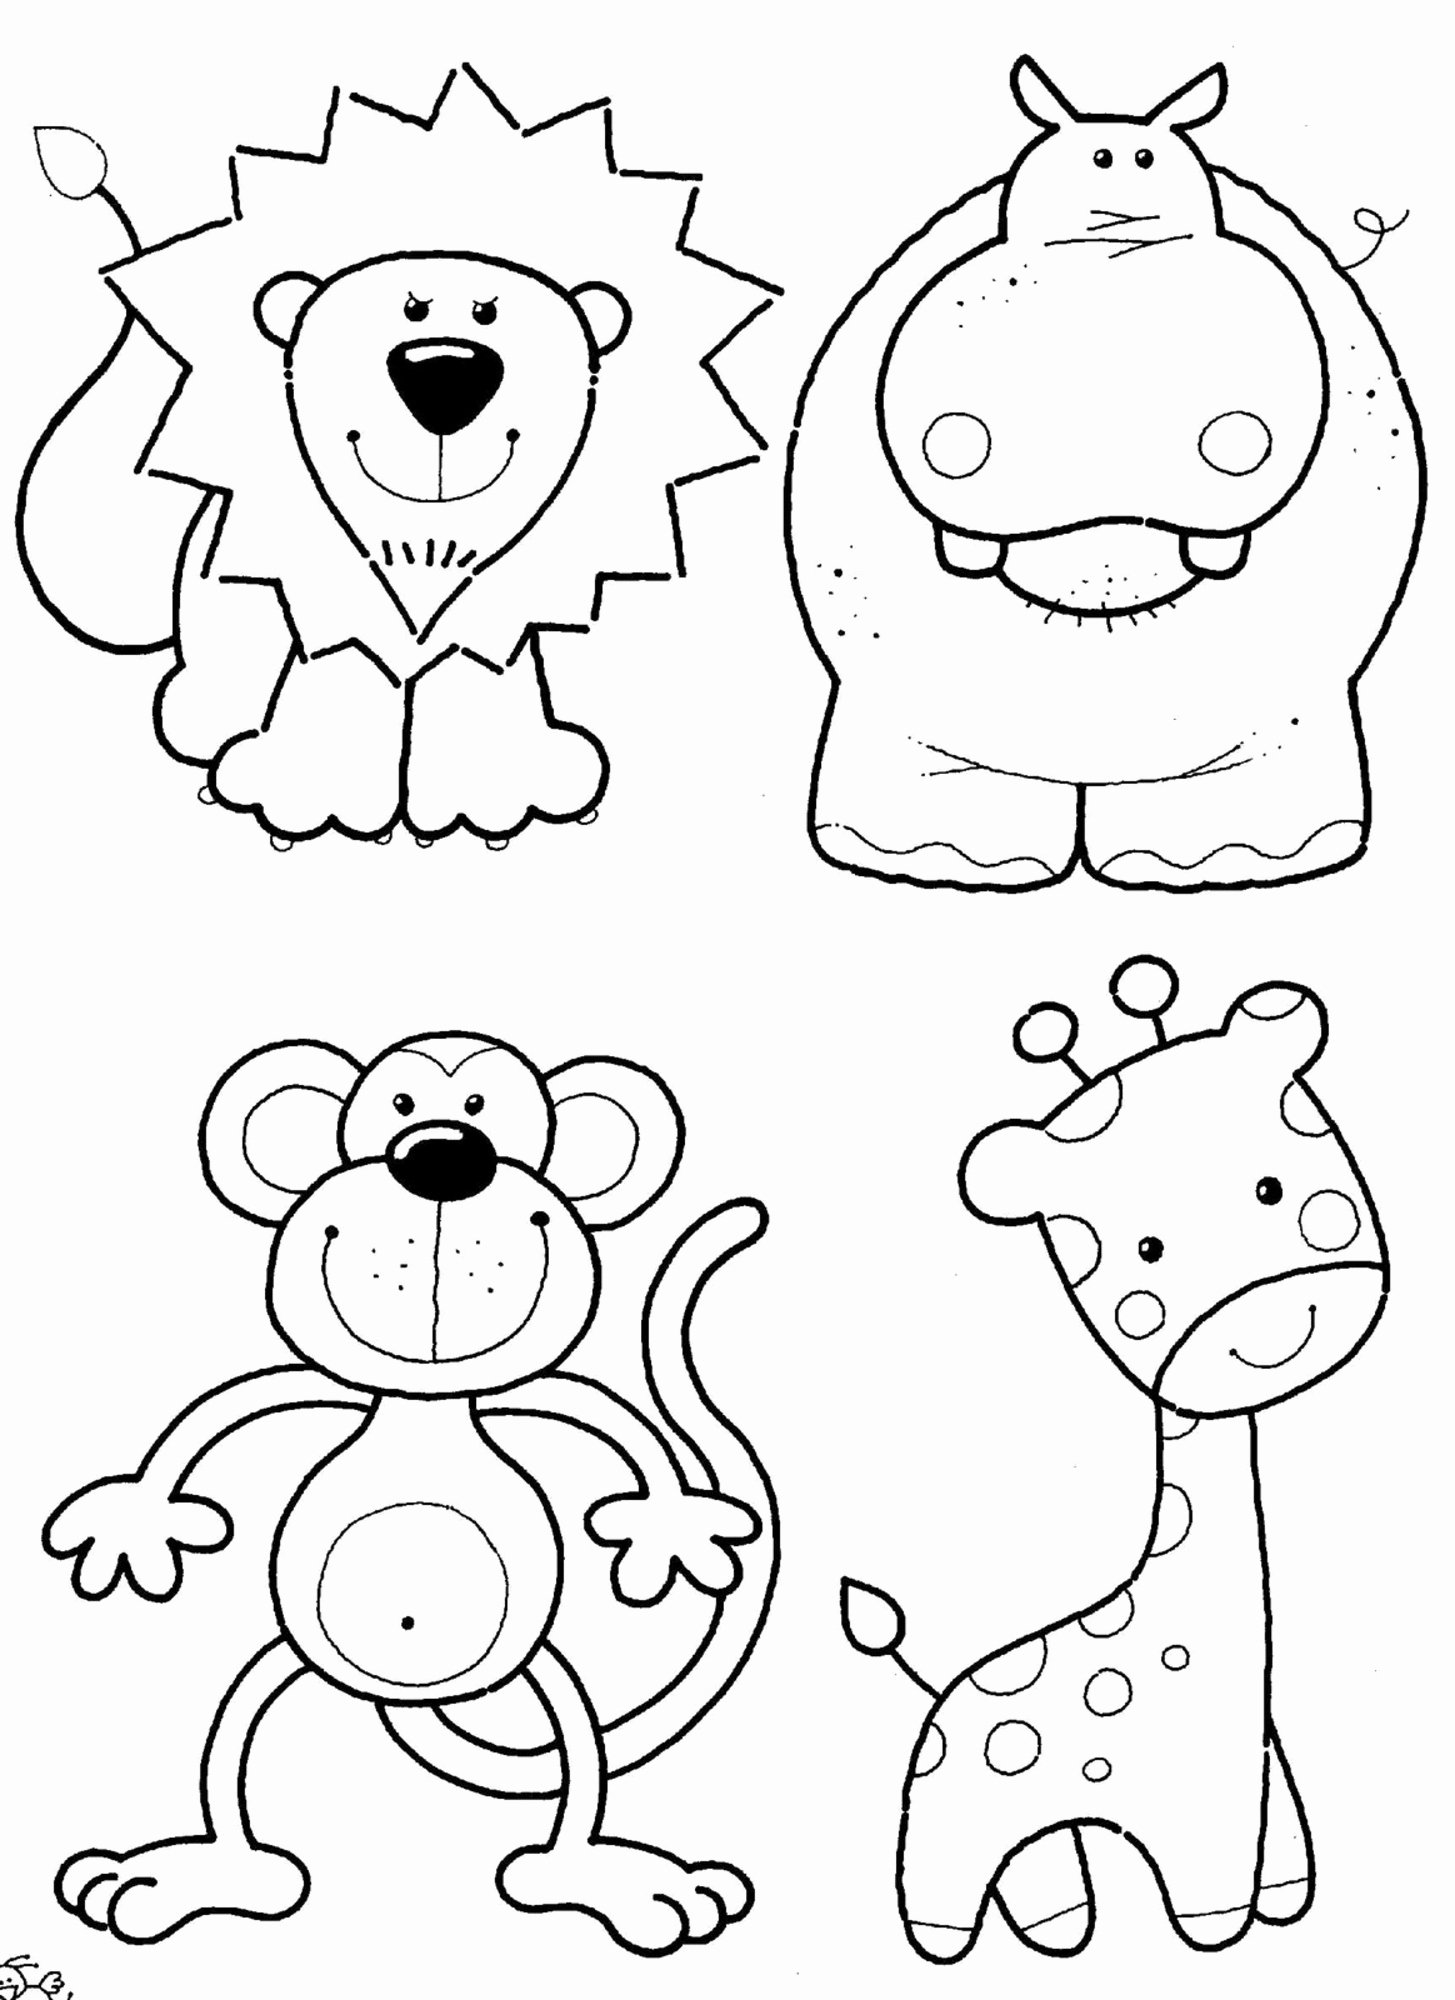 Zoo Worksheets for Preschoolers Inspirational Coloring Book Cute Animals Zoo Fabulous for themed Math